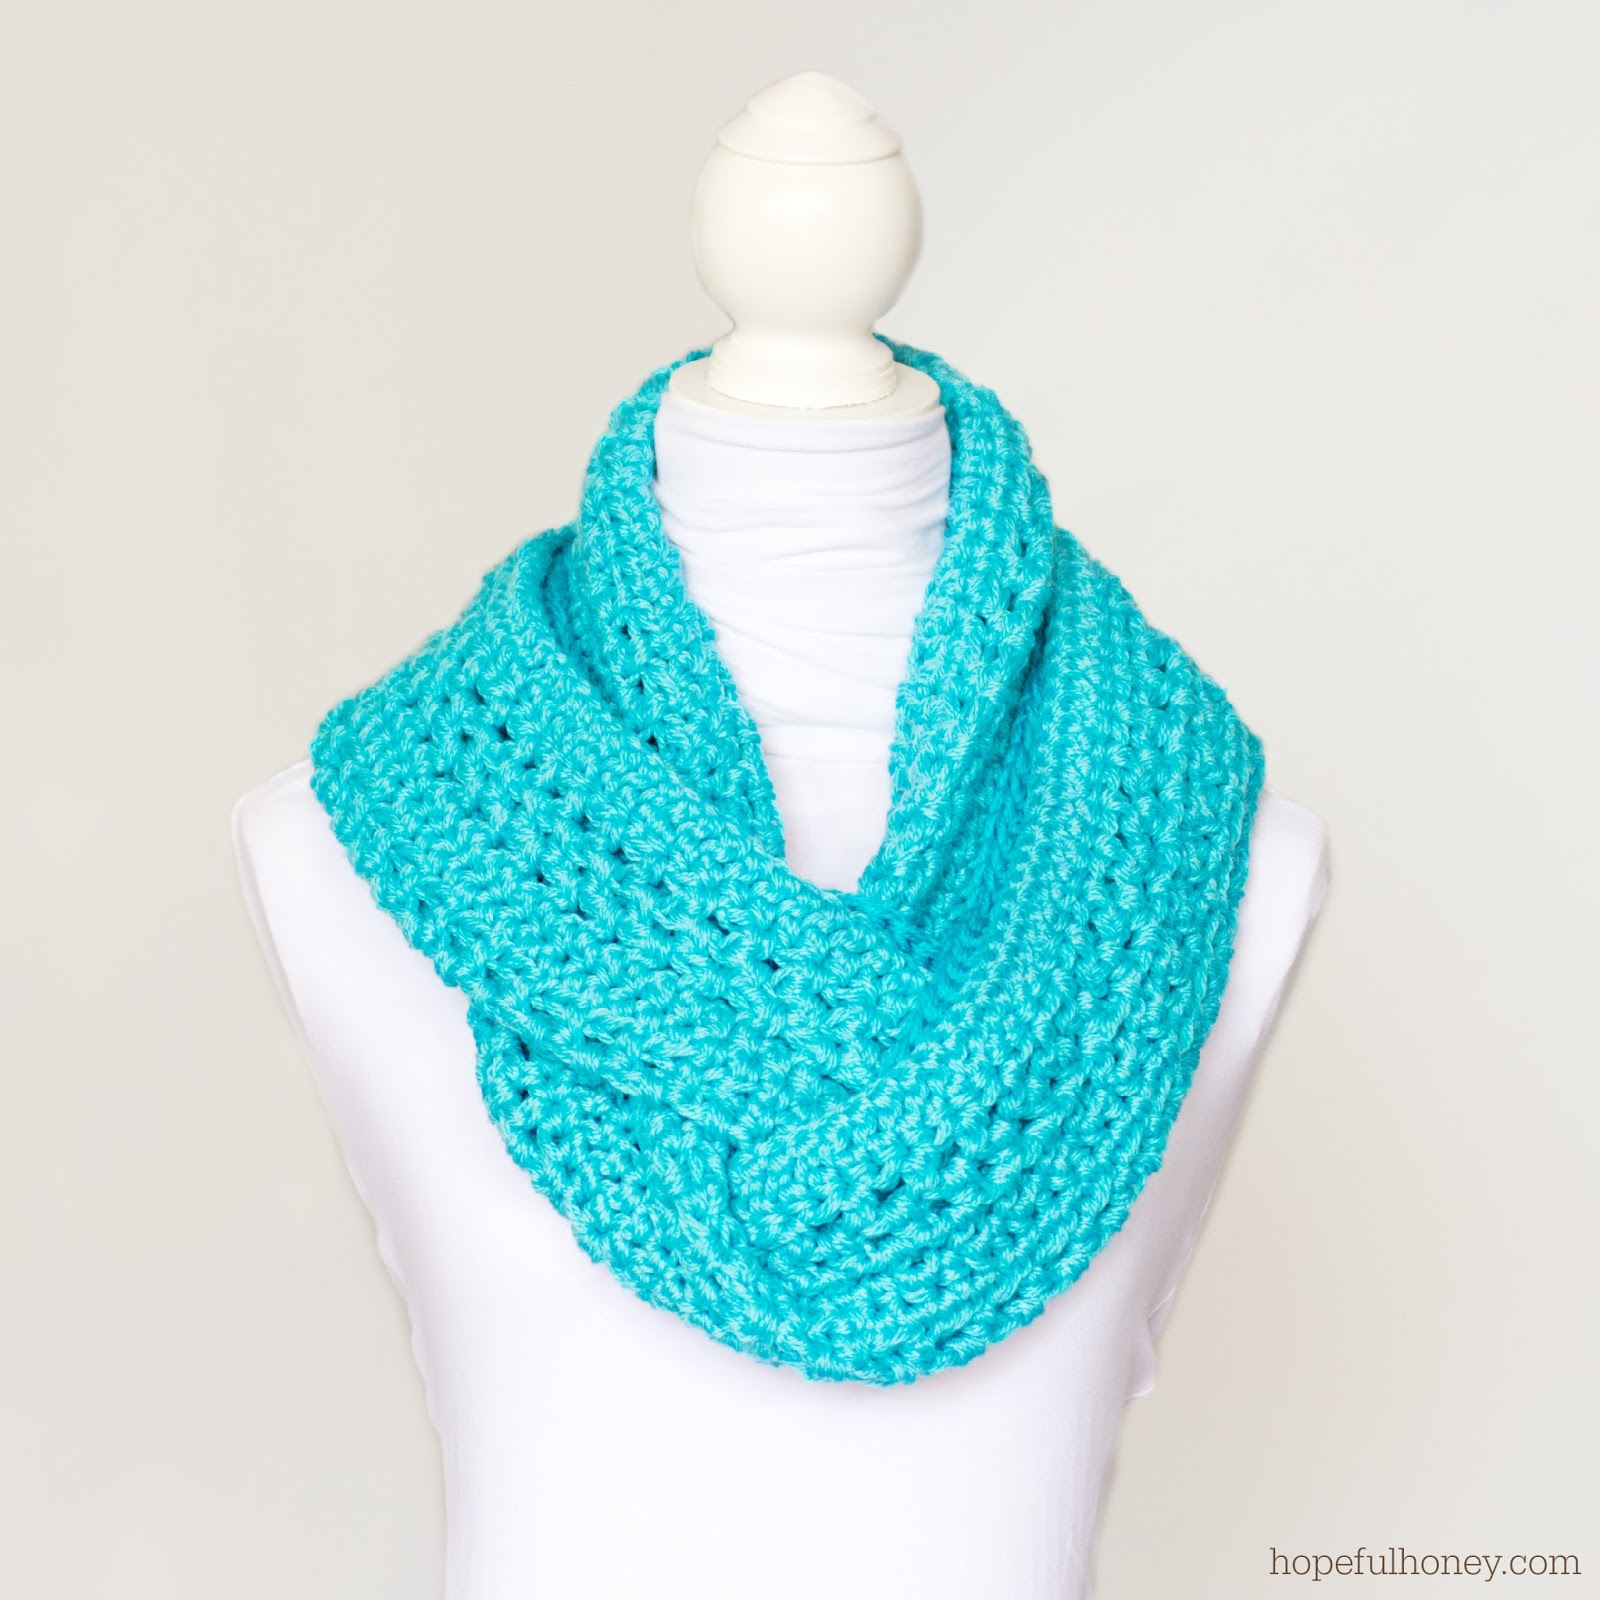 ... Honey Craft, Crochet, Create: Basic Circle Scarf Crochet Pattern